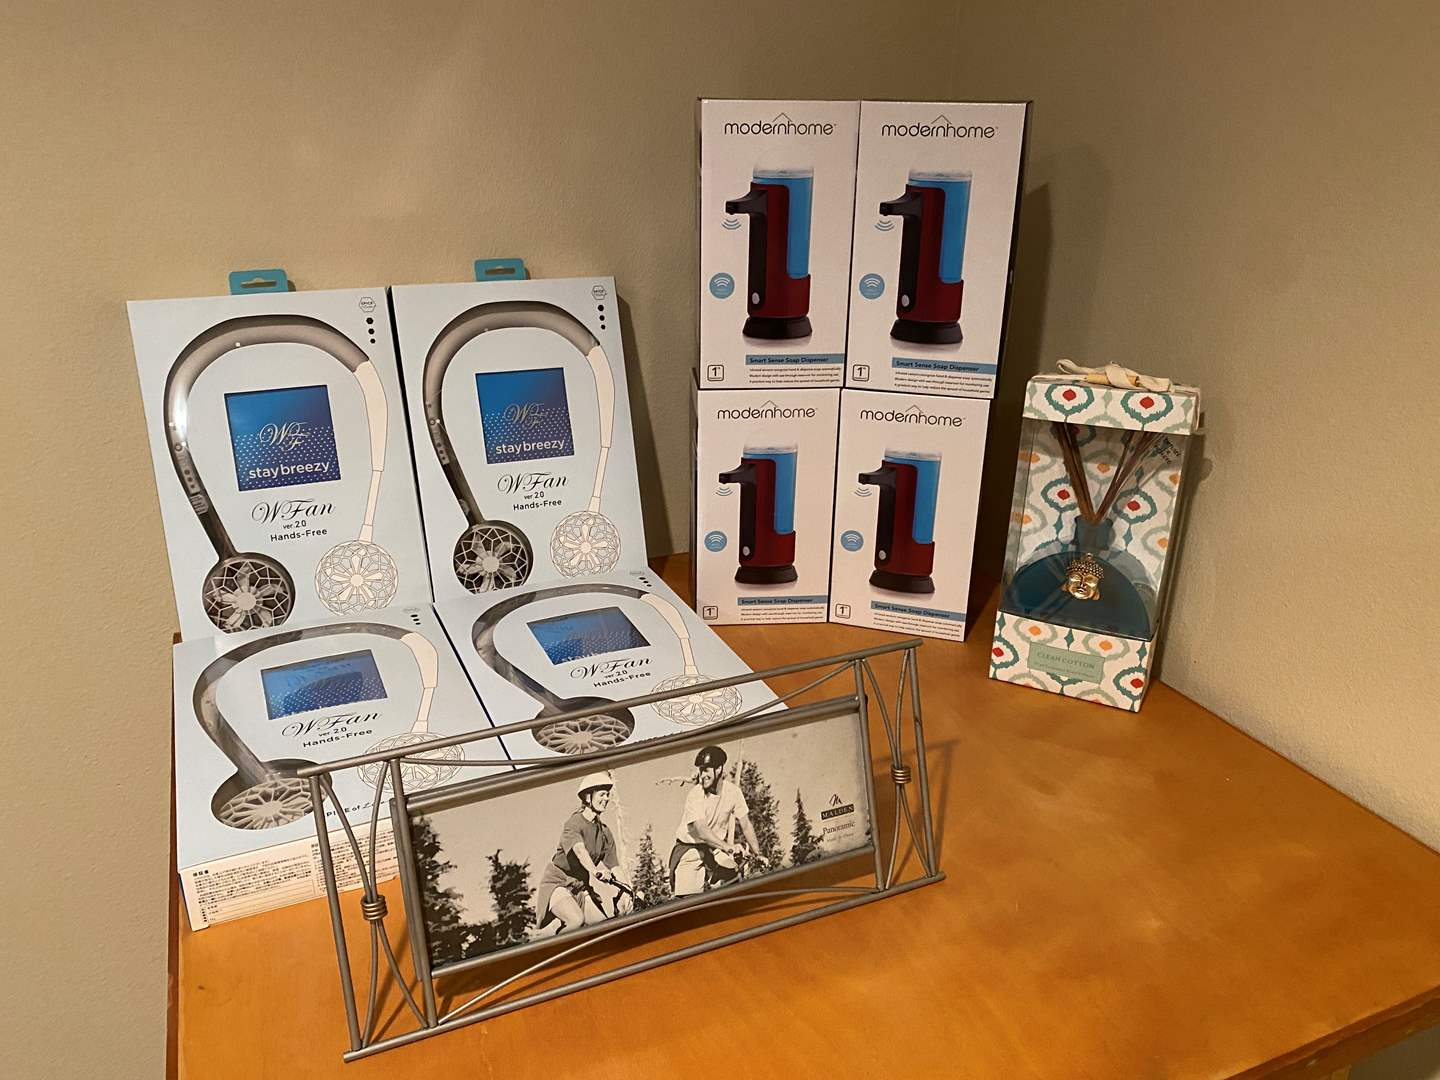 Lot # 140 - New in Box Items: Hands Free Fans, Modern Home Smart Soap Dispensers, Diffuser, Panoramic Photo Frame (main image)